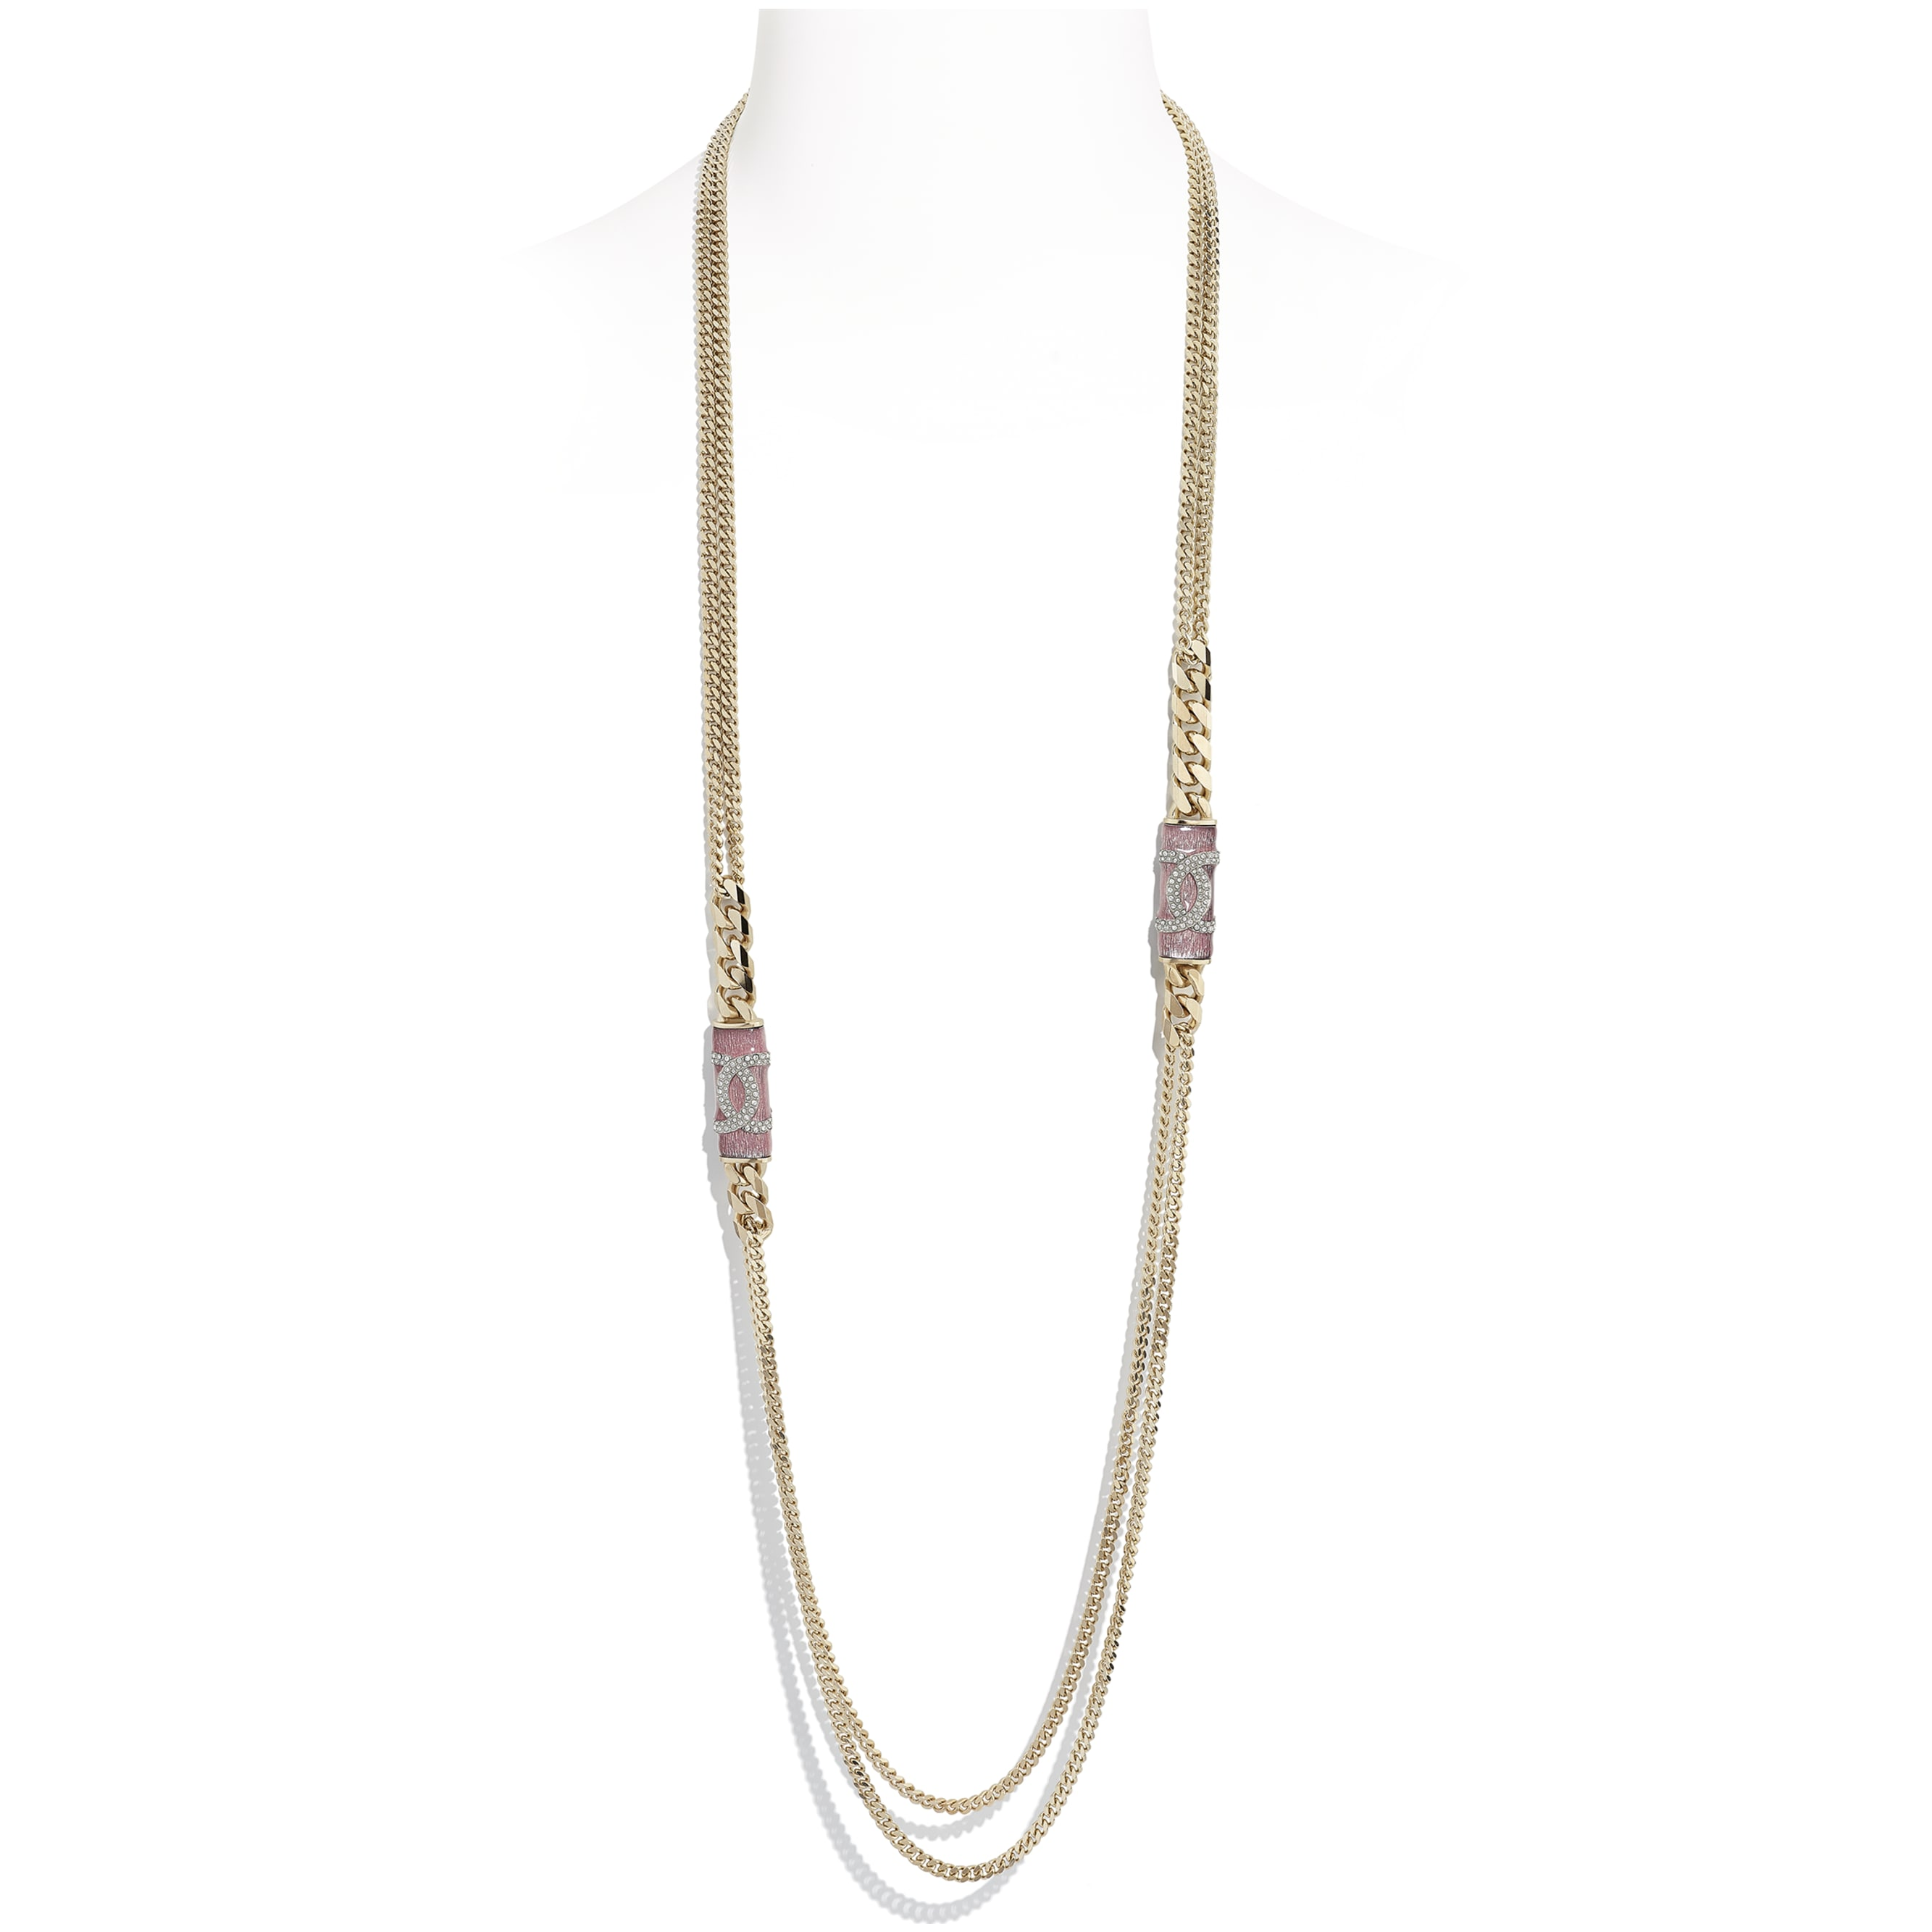 Long Necklace - Gold, Pink & Crystal - Metal & Diamantés - CHANEL - Default view - see standard sized version